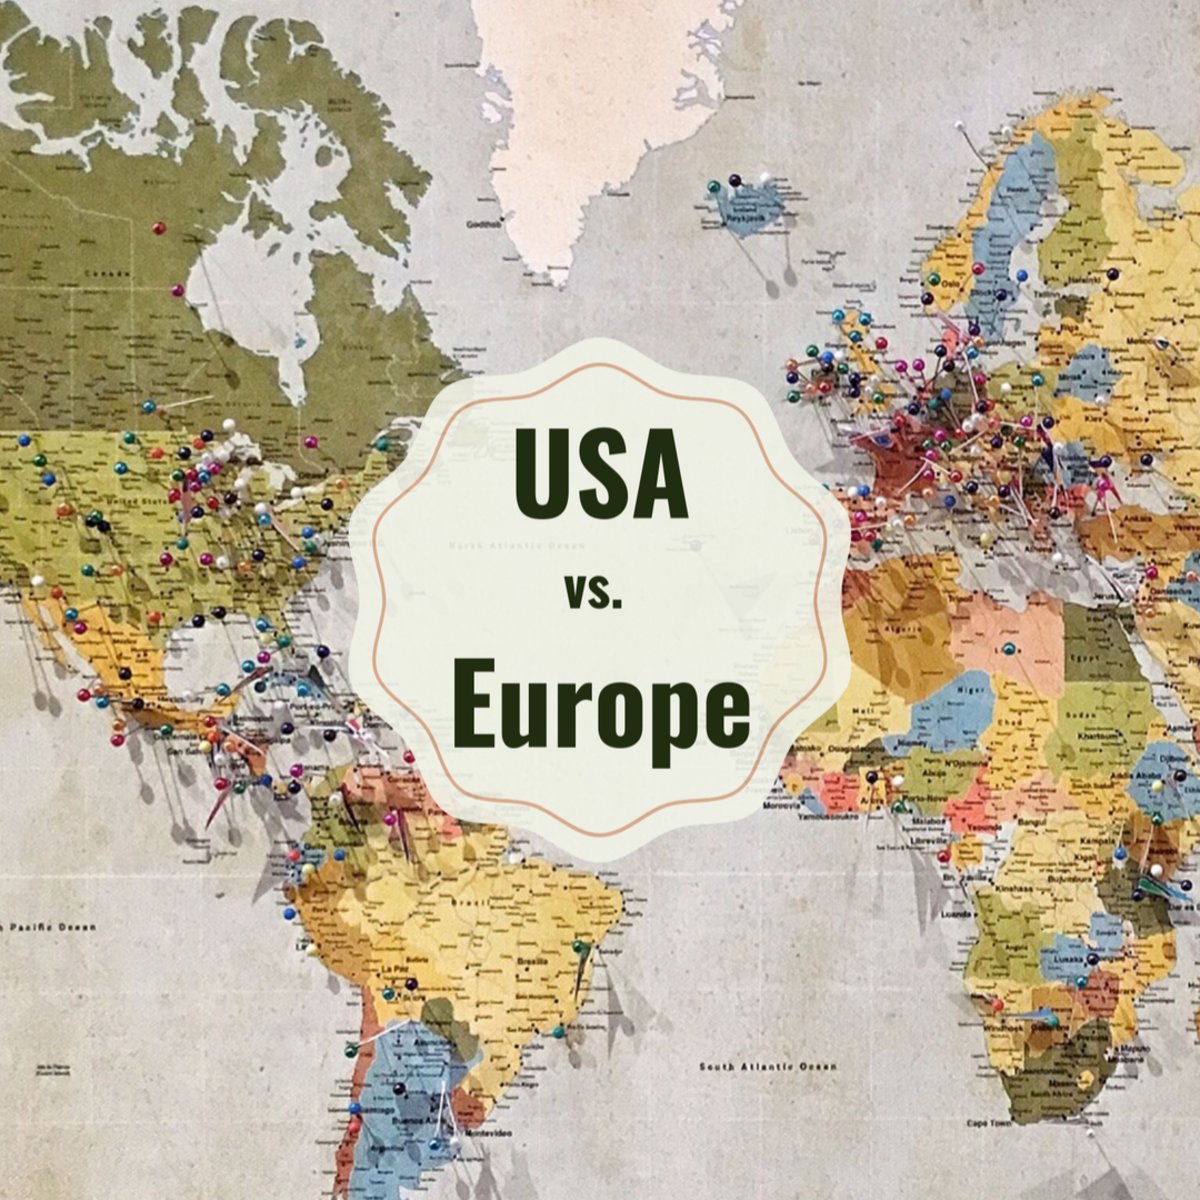 USA vs. Europe: Ten Reasons Europe Is Better Than the USA